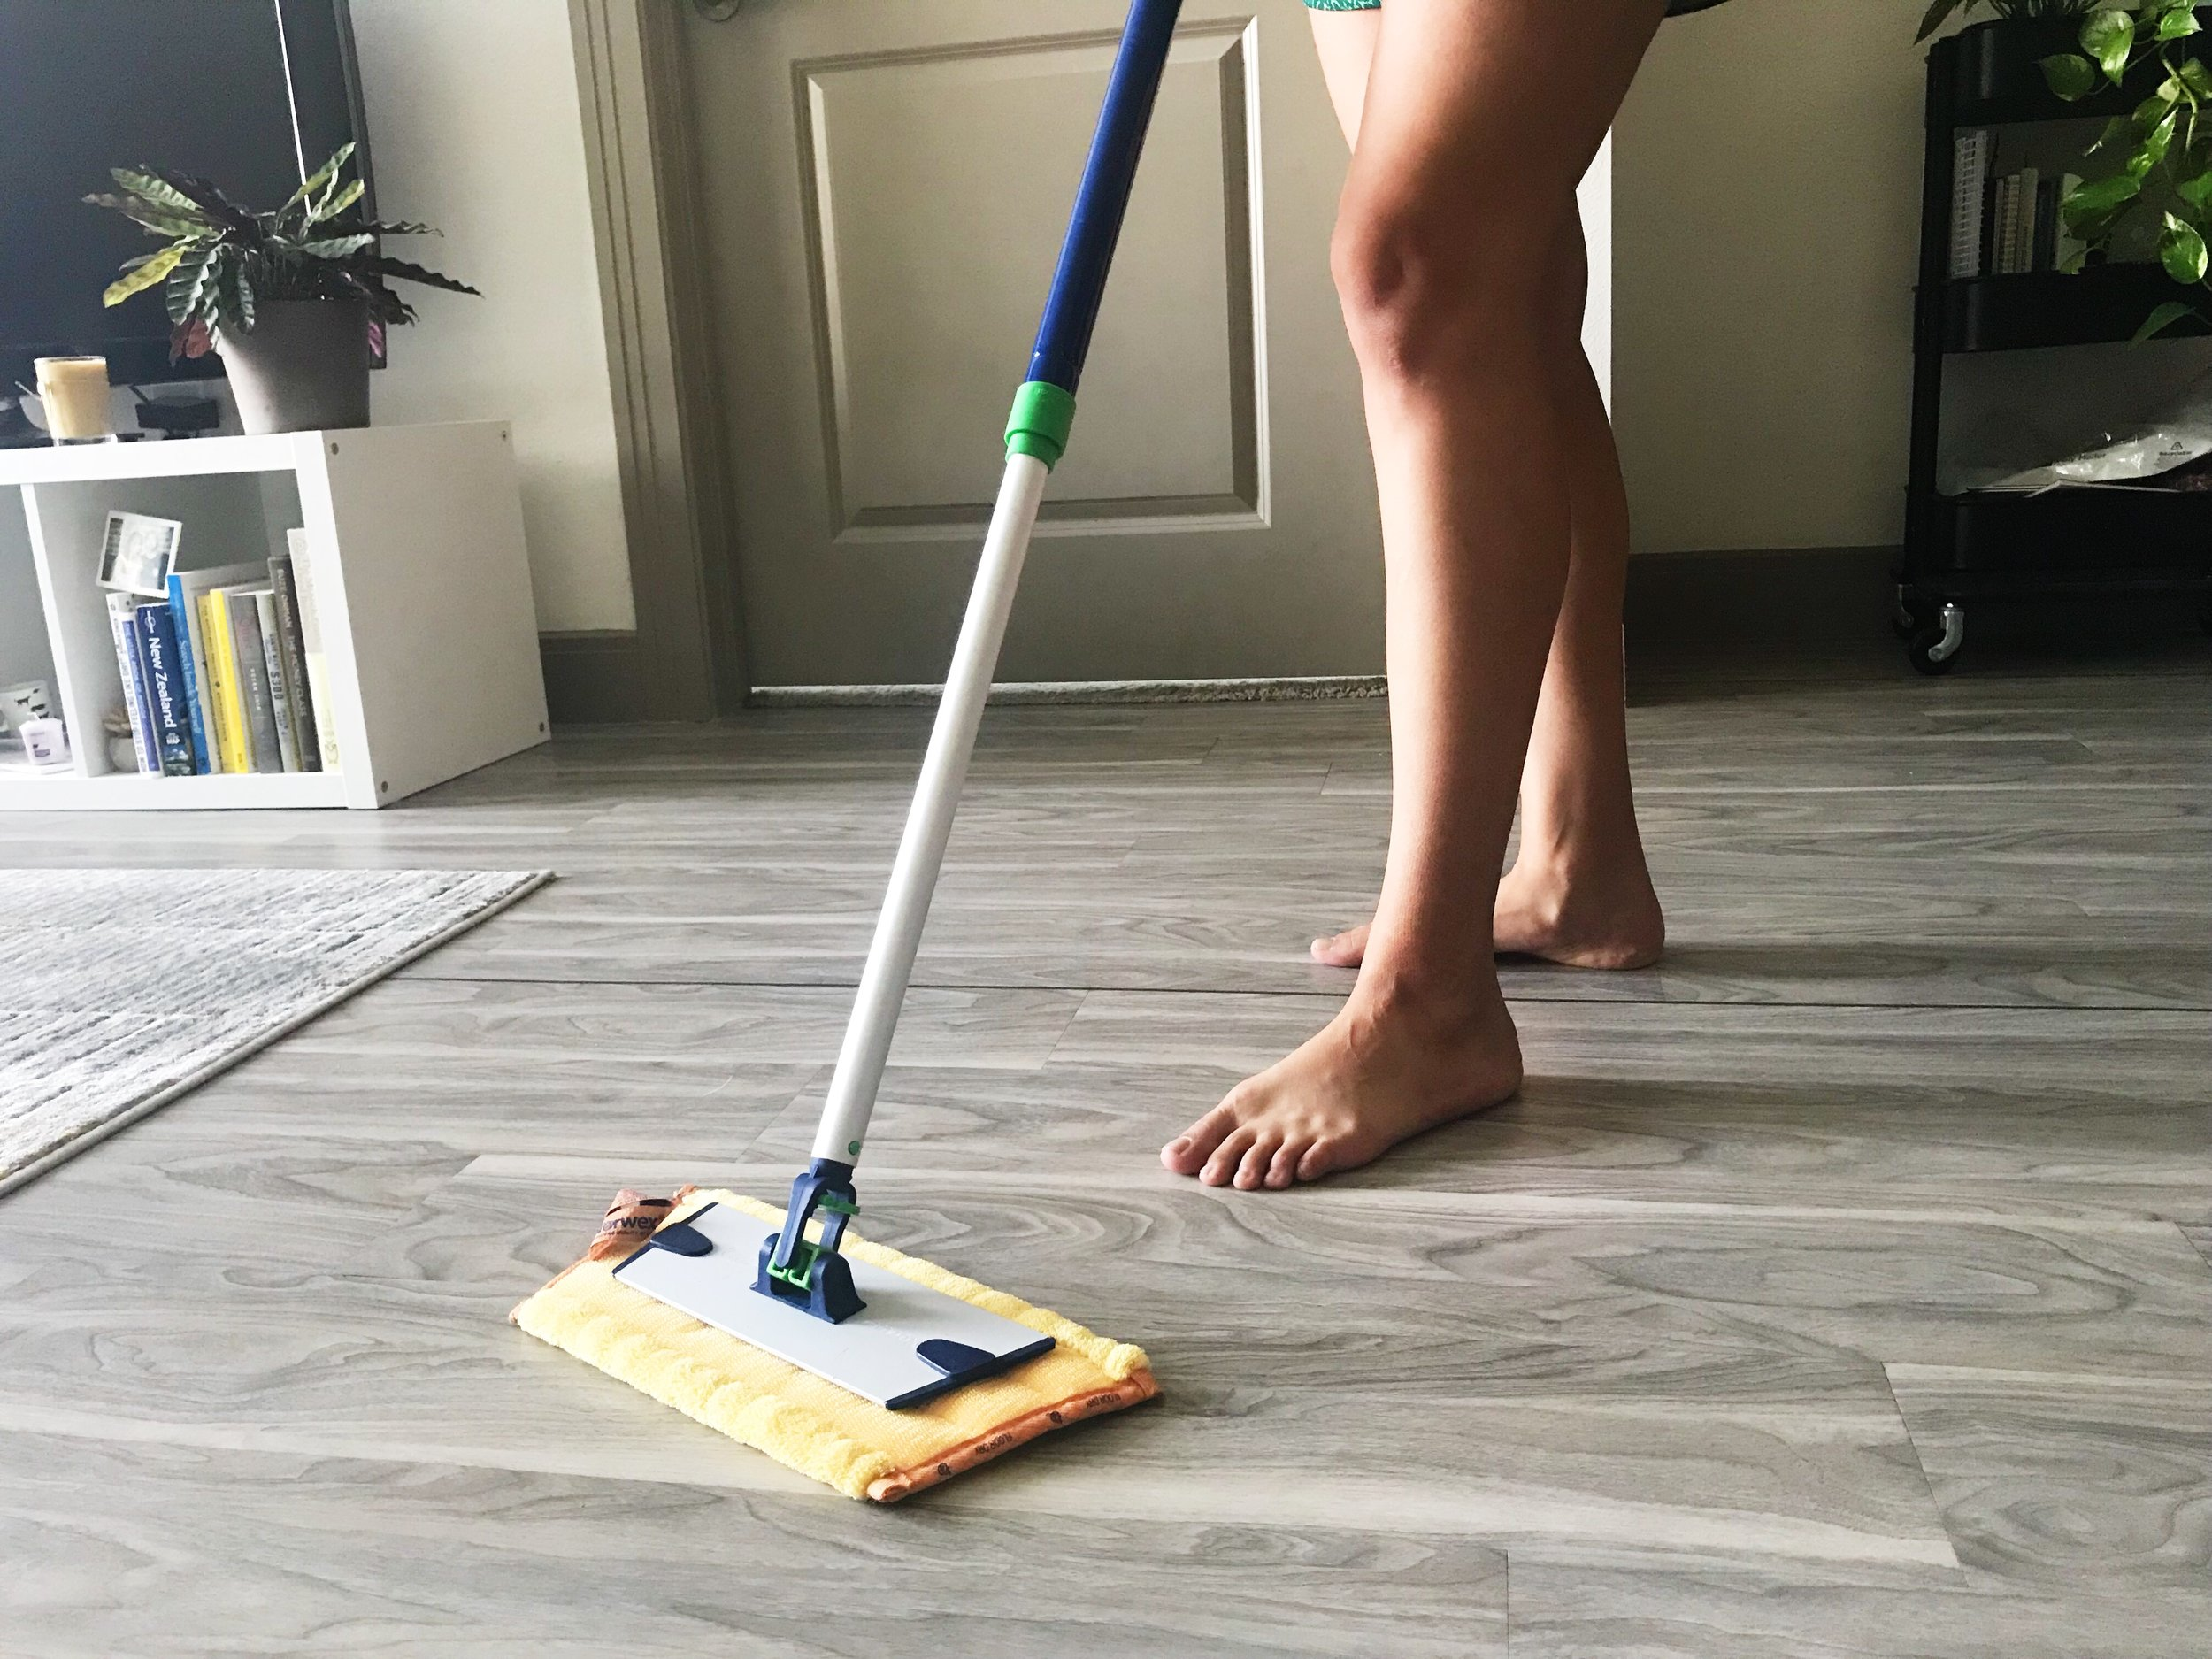 Keep your home clean and tidy by cleaning the floors with Superior Mop Collection every morning. #cleanroutine #tidyhome #cleaningchecklist